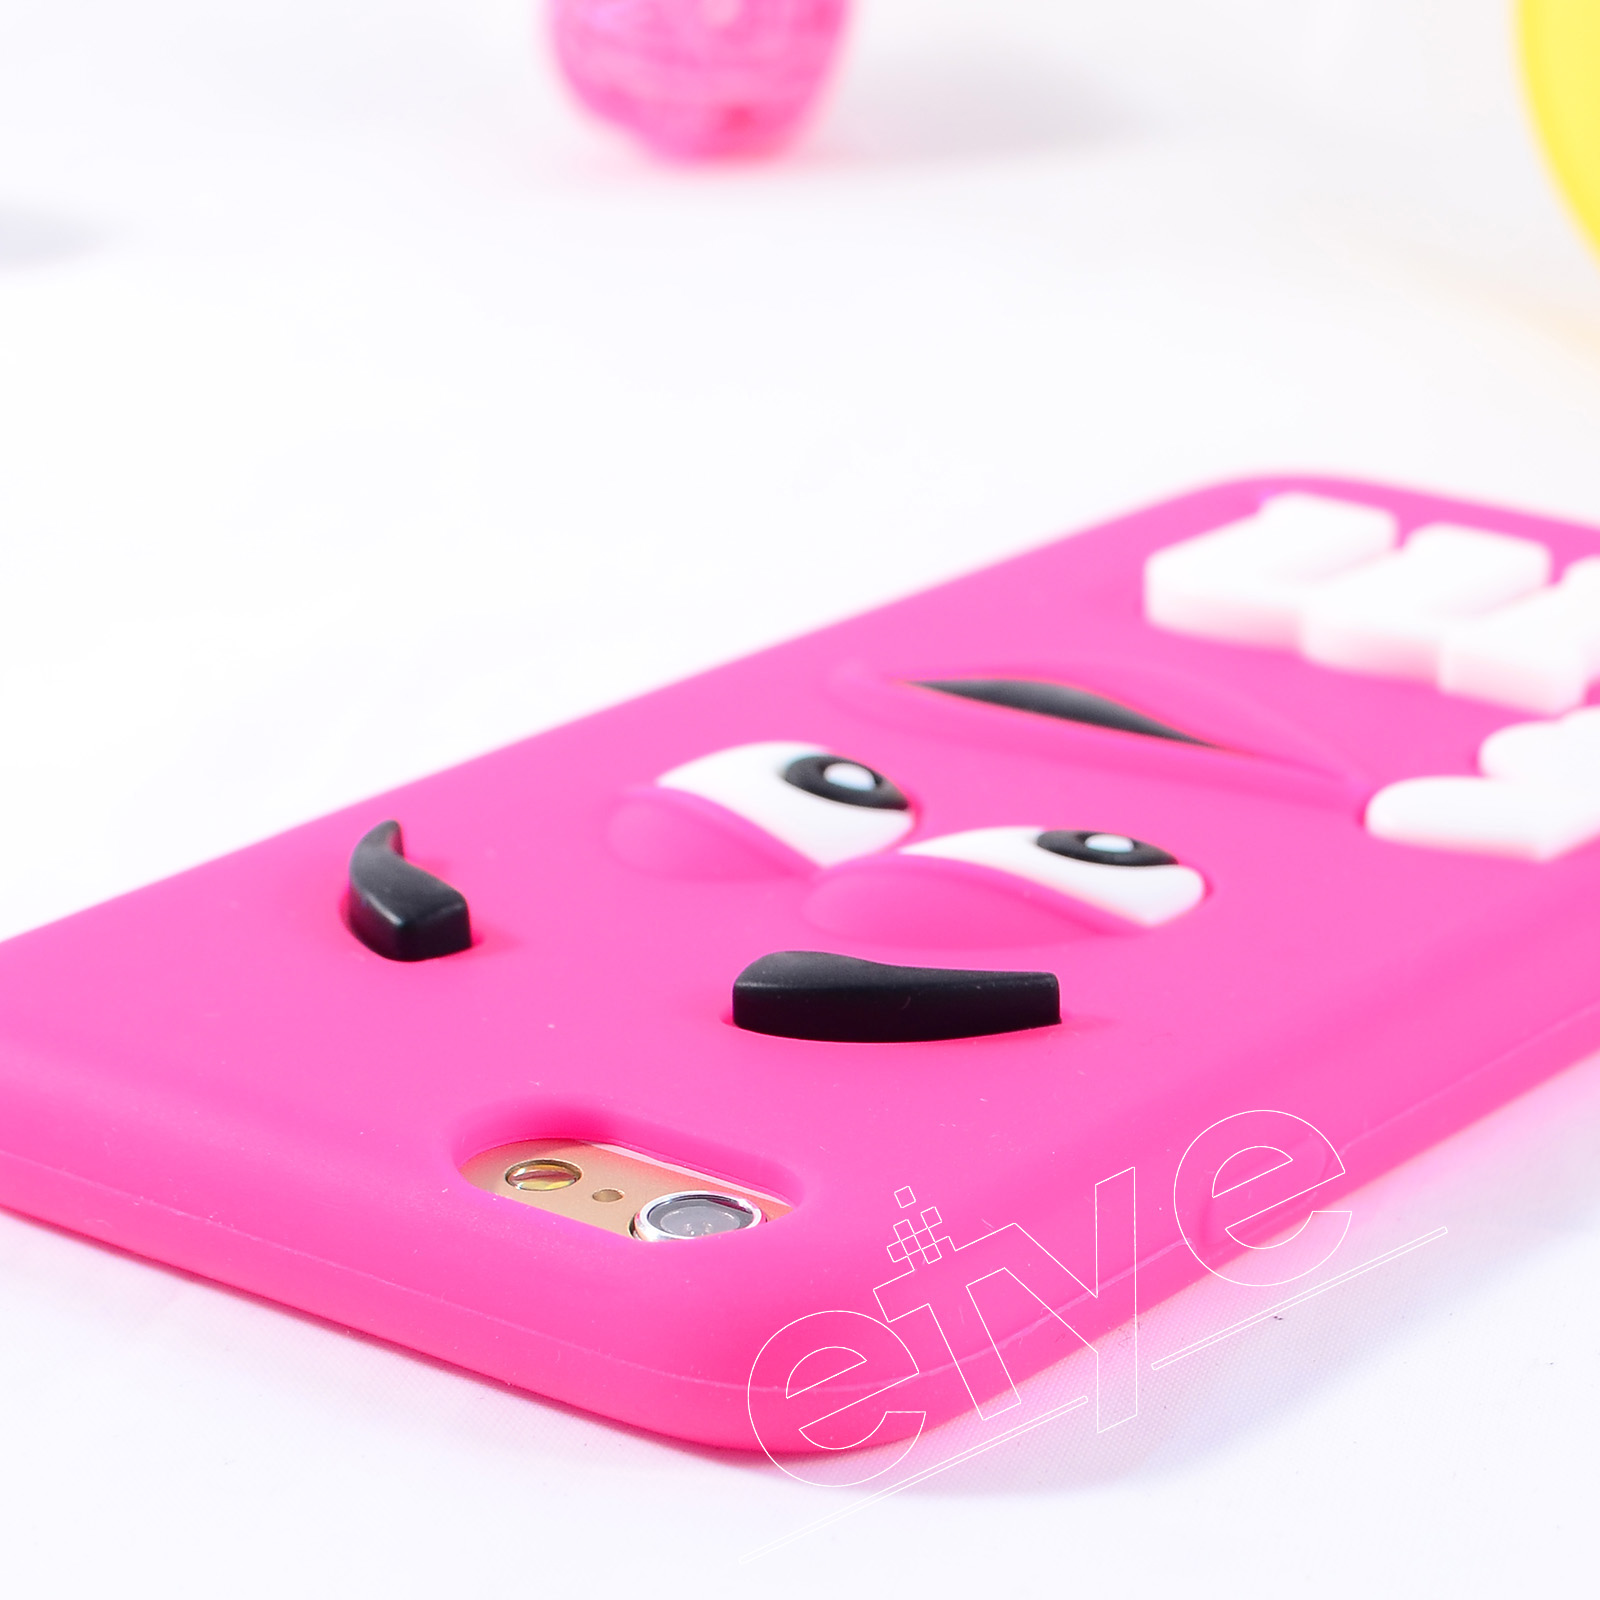 3D Cute Cartoon M&M Fashion Soft Silicon Cover Colorful Rainbow Case Skin Shell For iPhone 5 5s SE 6 6S 7 Plus iPod Touch 4 5